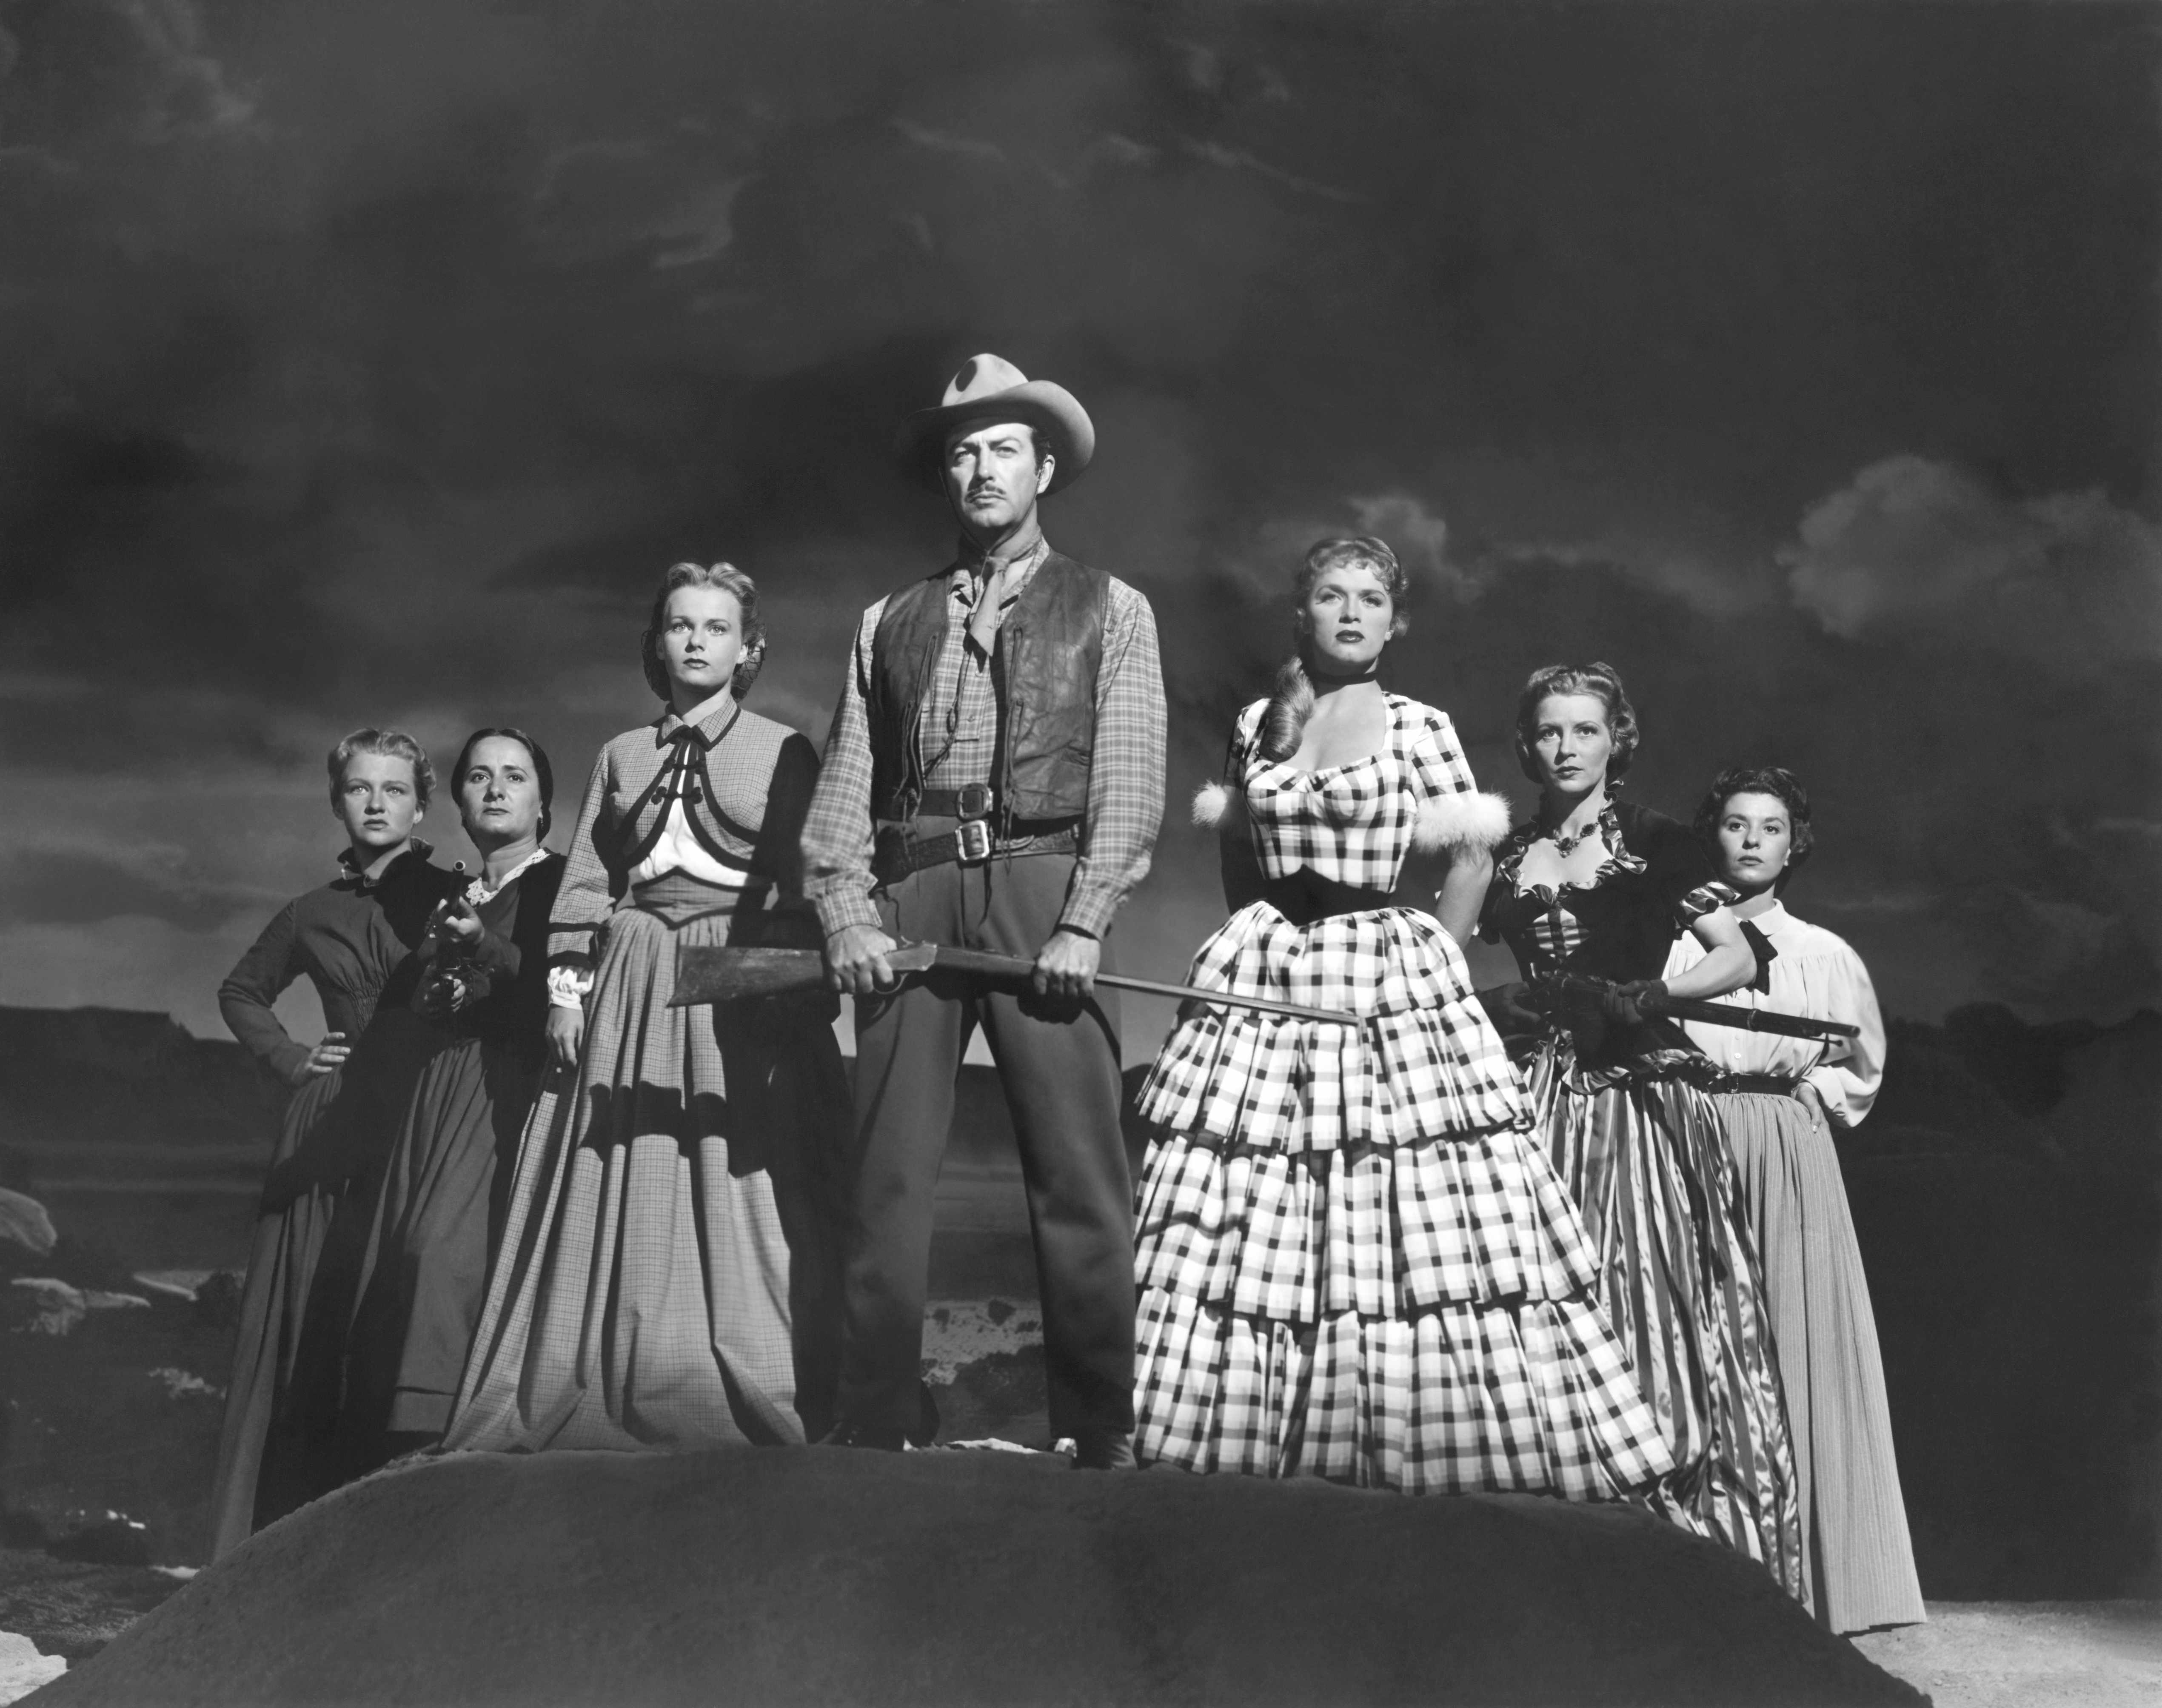 A still from the set of 'Westward the Women', directed by William A Wellman. (Photo by Metro-Goldwyn-Mayer Pictures/Sunset Boulevard/Corbis via Getty Images)